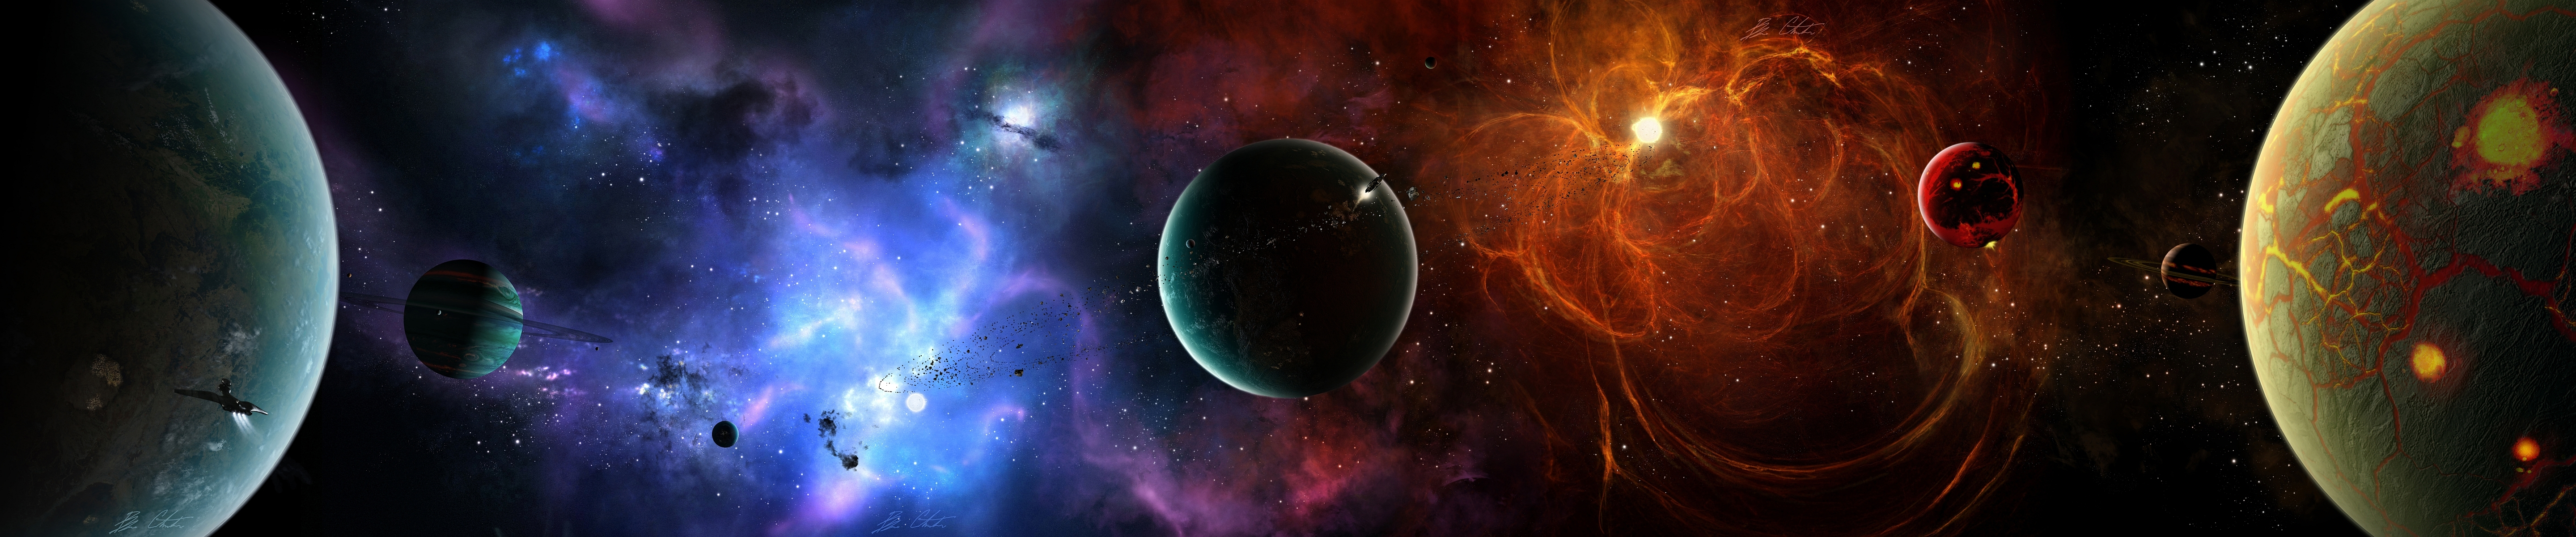 4480x1080 wallpaper,outer space,astronomical object,atmosphere,space,universe